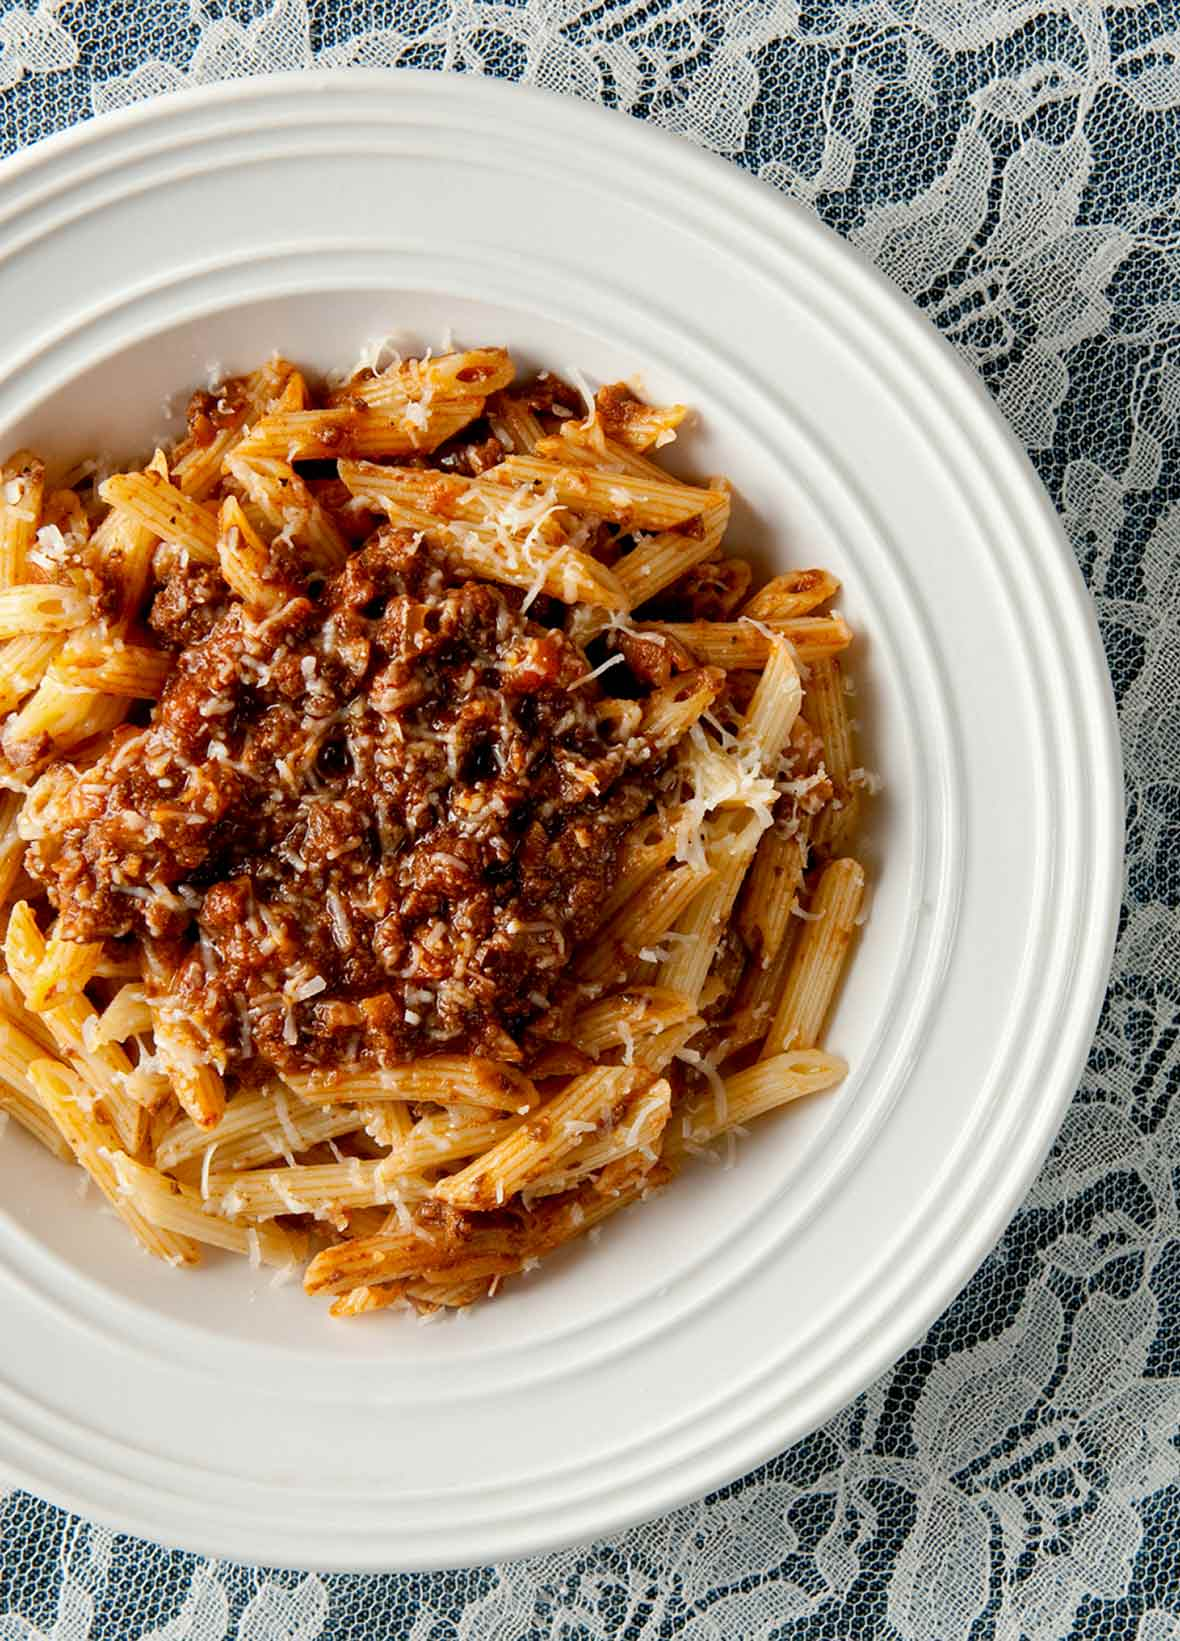 White bowl of venison Bolognese made with ground venison, carrots, onion, celery, mushrooms a top rigatoni